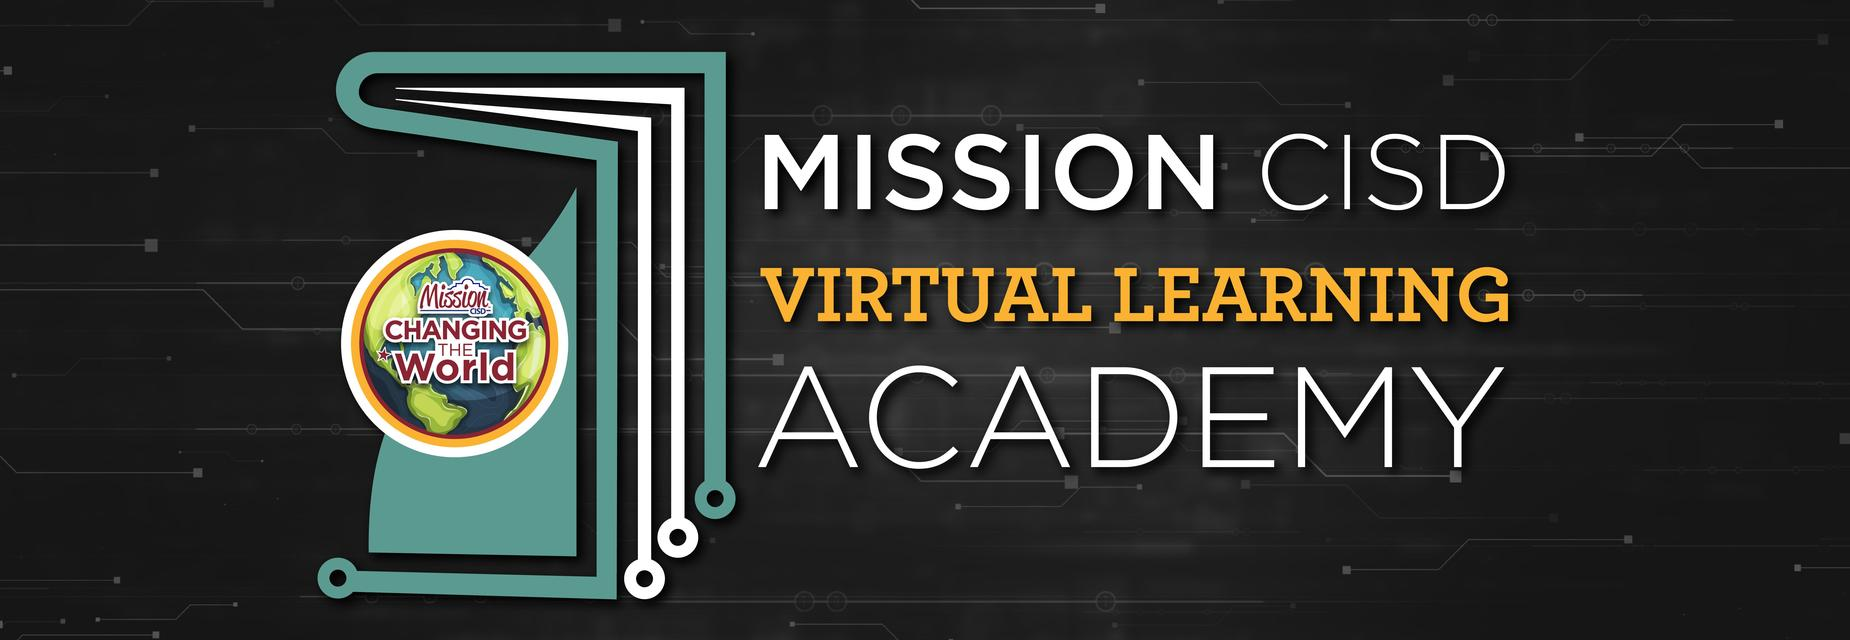 graphic for virtual learning academy